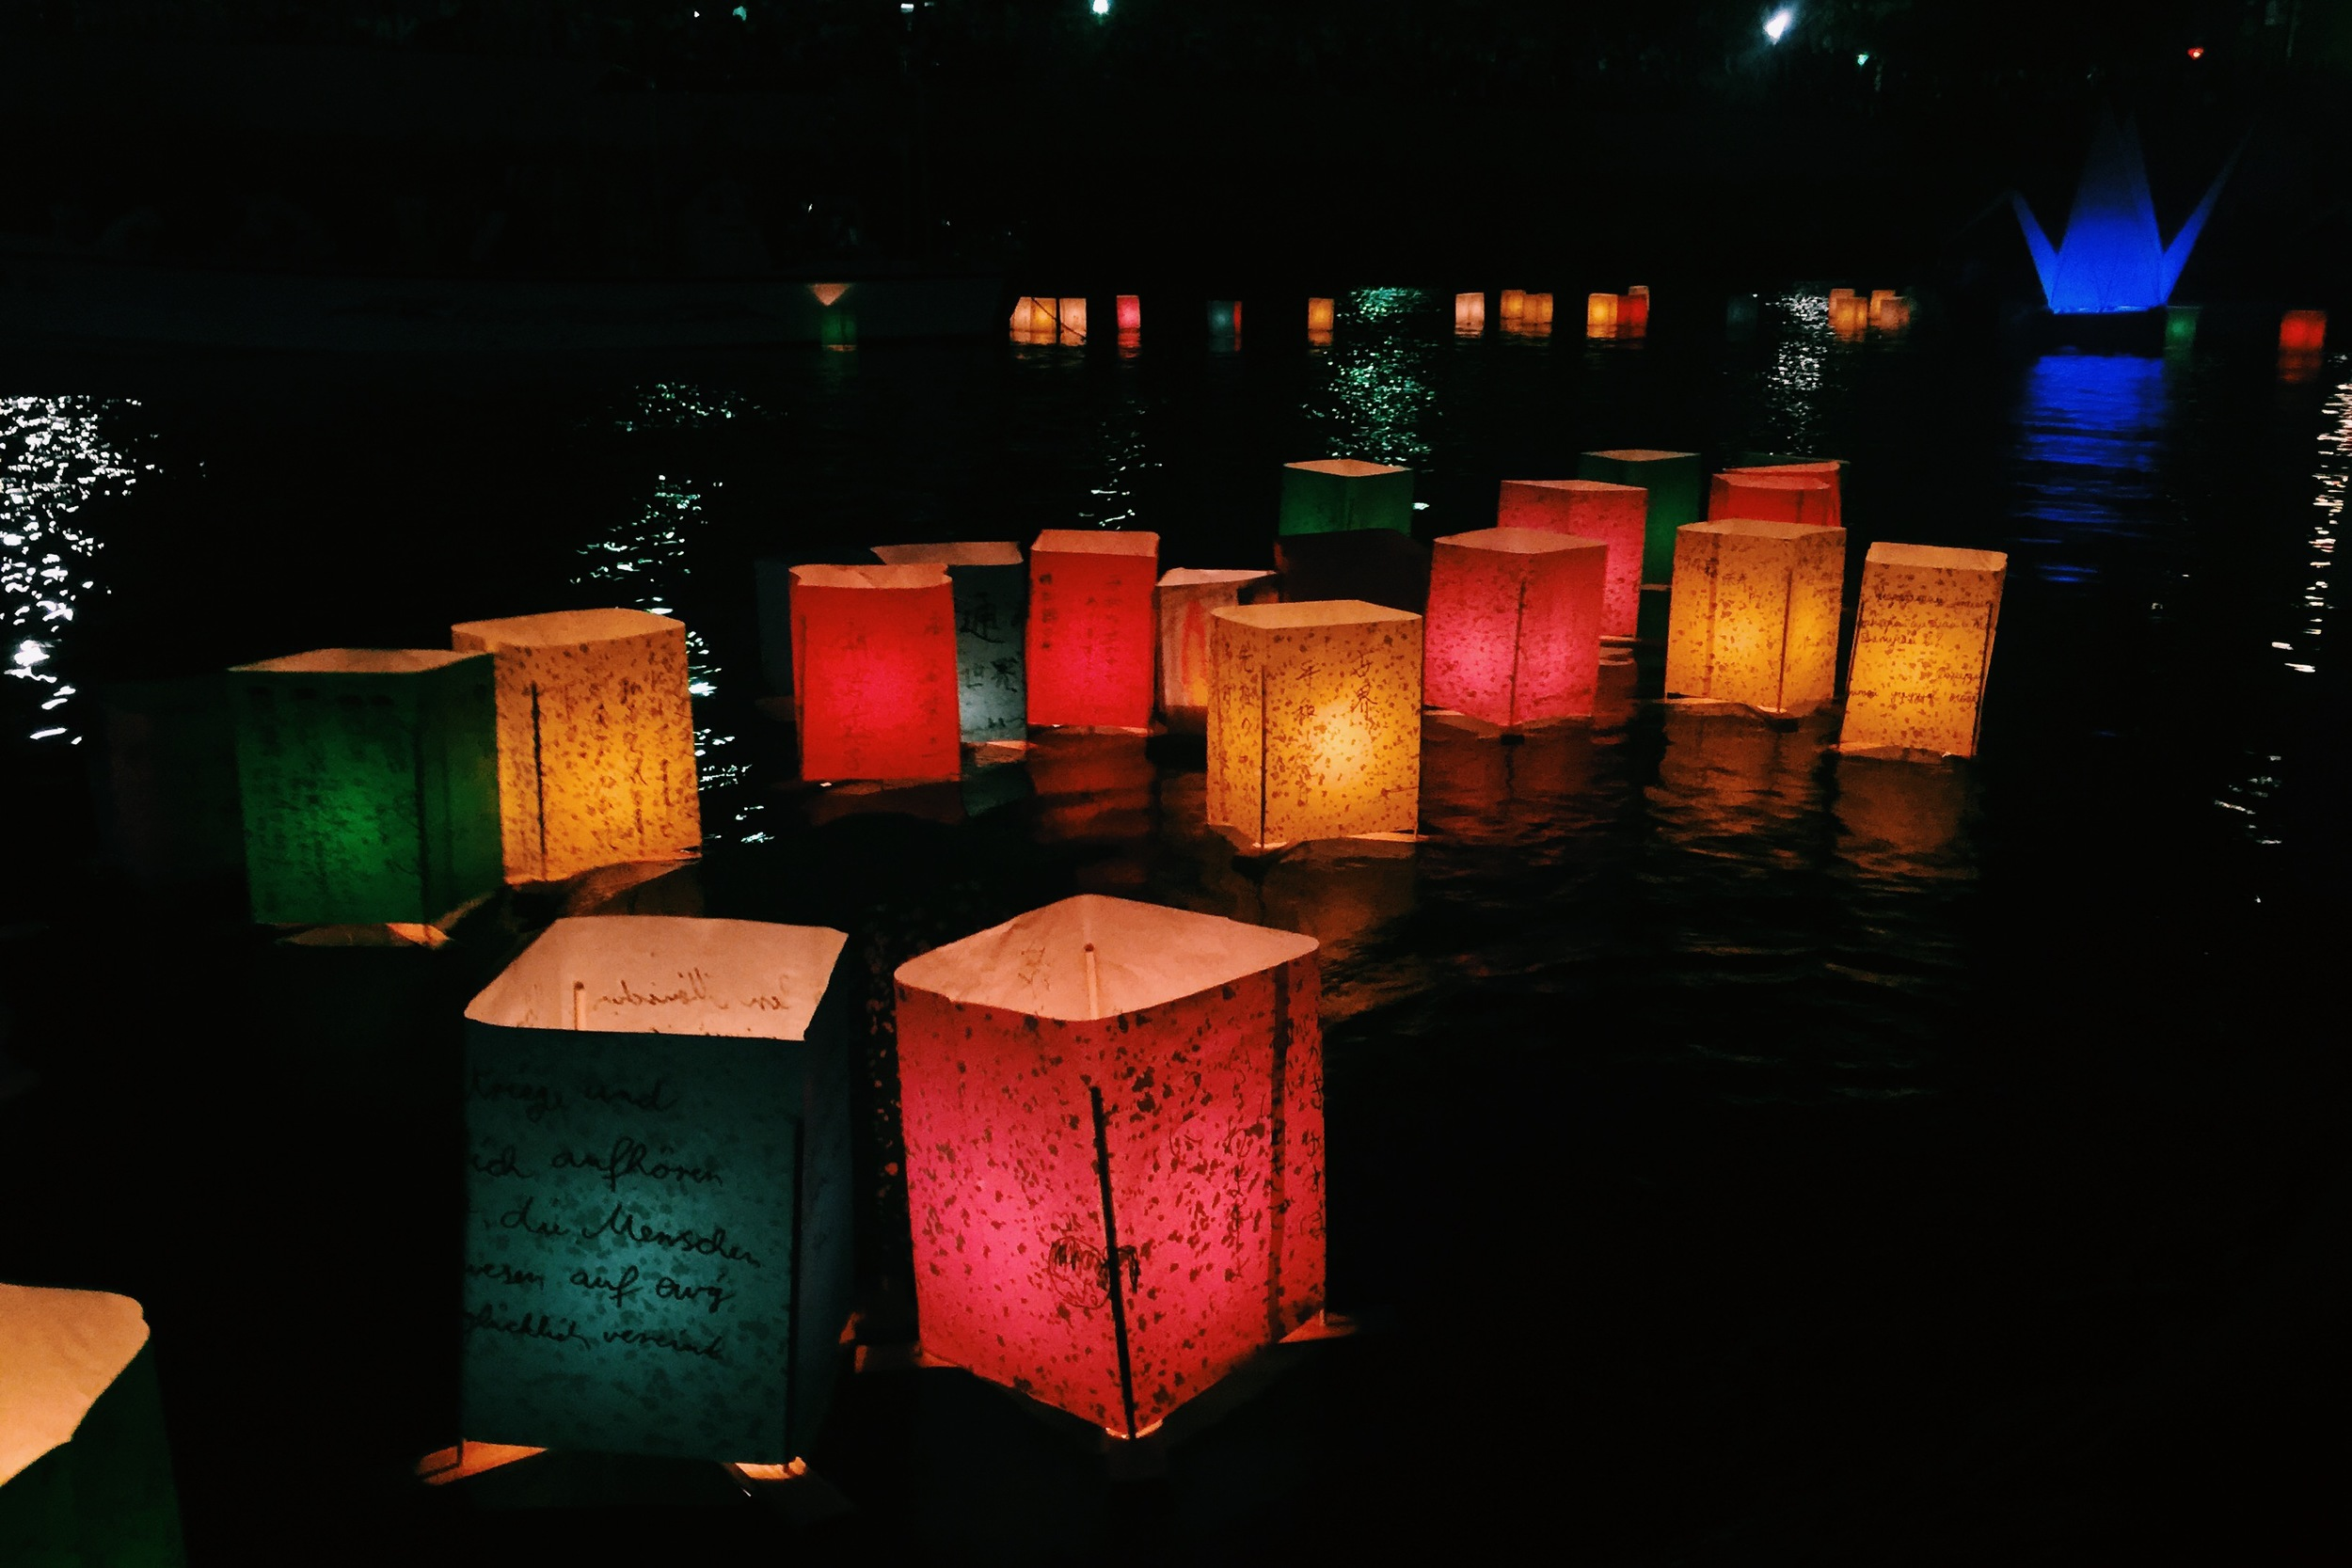 The sun sets, the cicadas quiet, and the lanterns come out